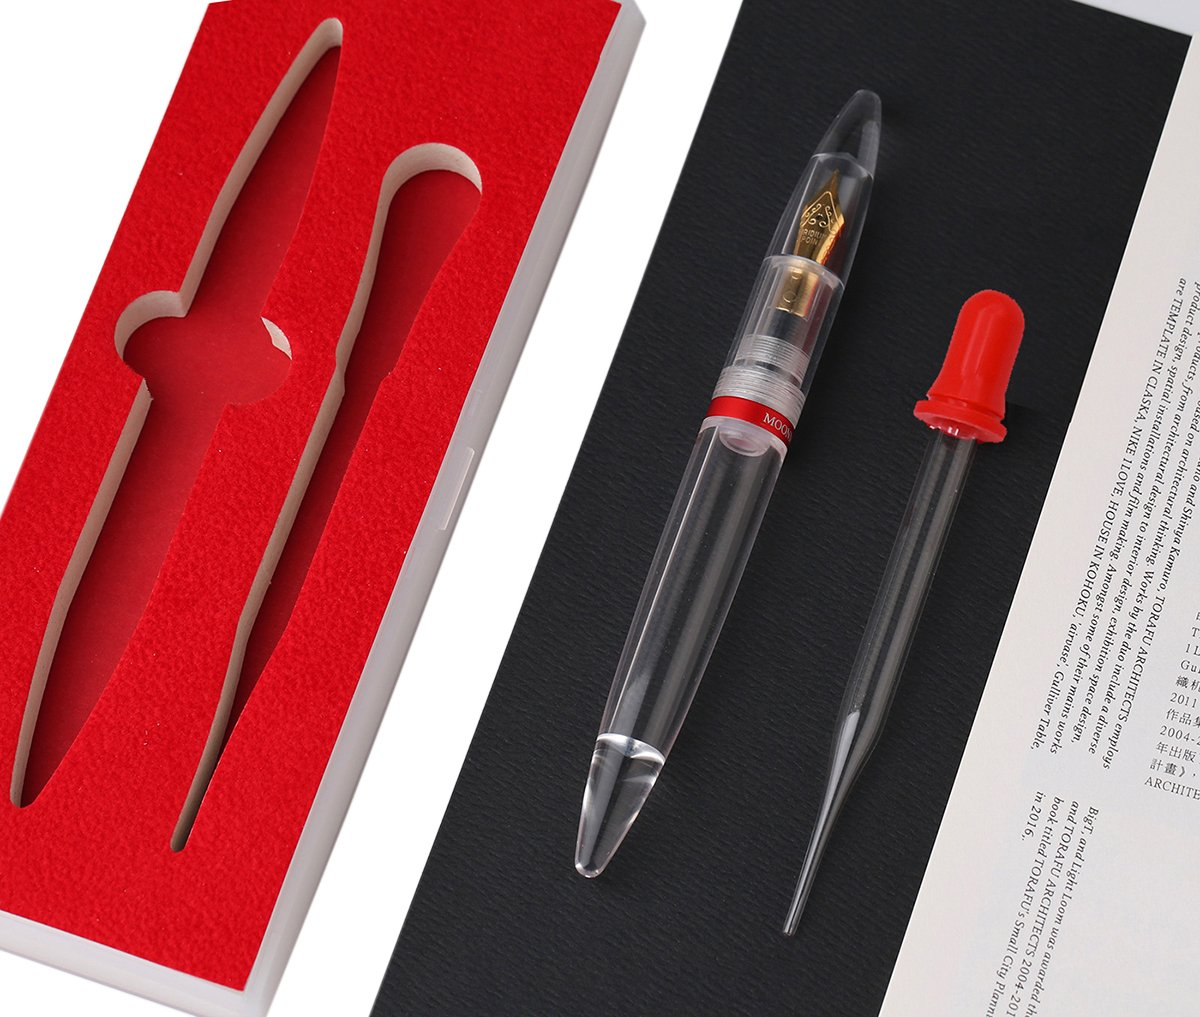 Transparent Eye Dropper Filling Fountain Pen by Moonman M2【2018 New Arrival】Large-Capacity Ink Storing, Fine Nib Writing Calligraphy Pen Gift Set for Office/Business/Student/Signature